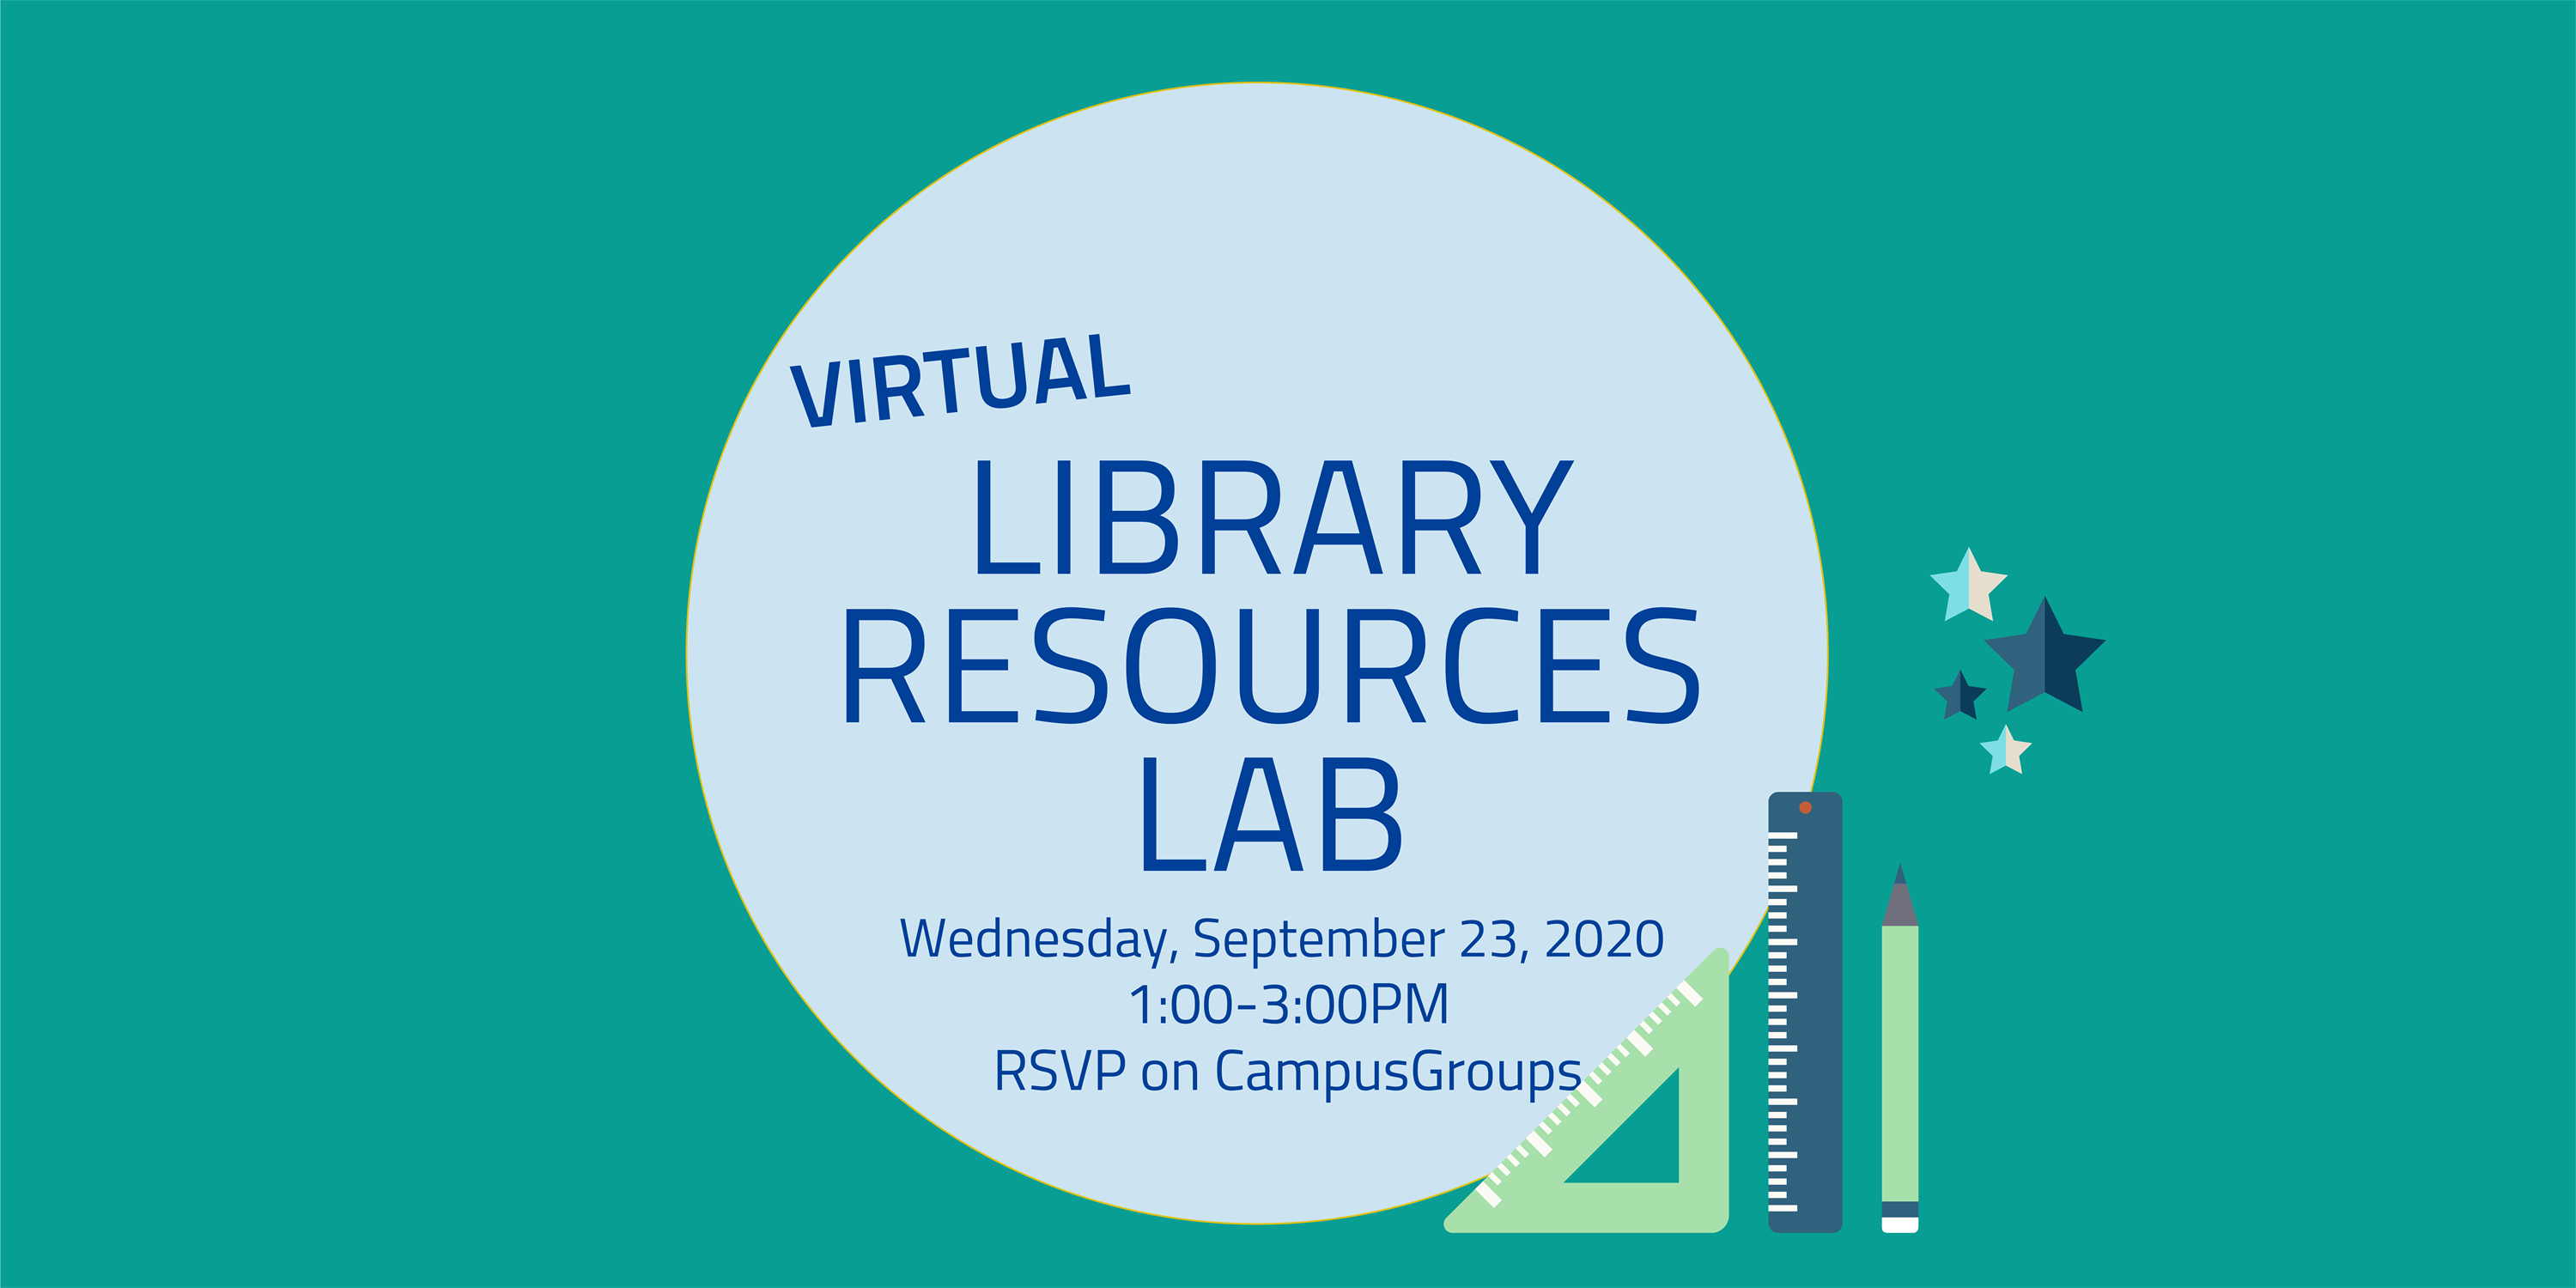 Science and Engineering Library Resources Lab